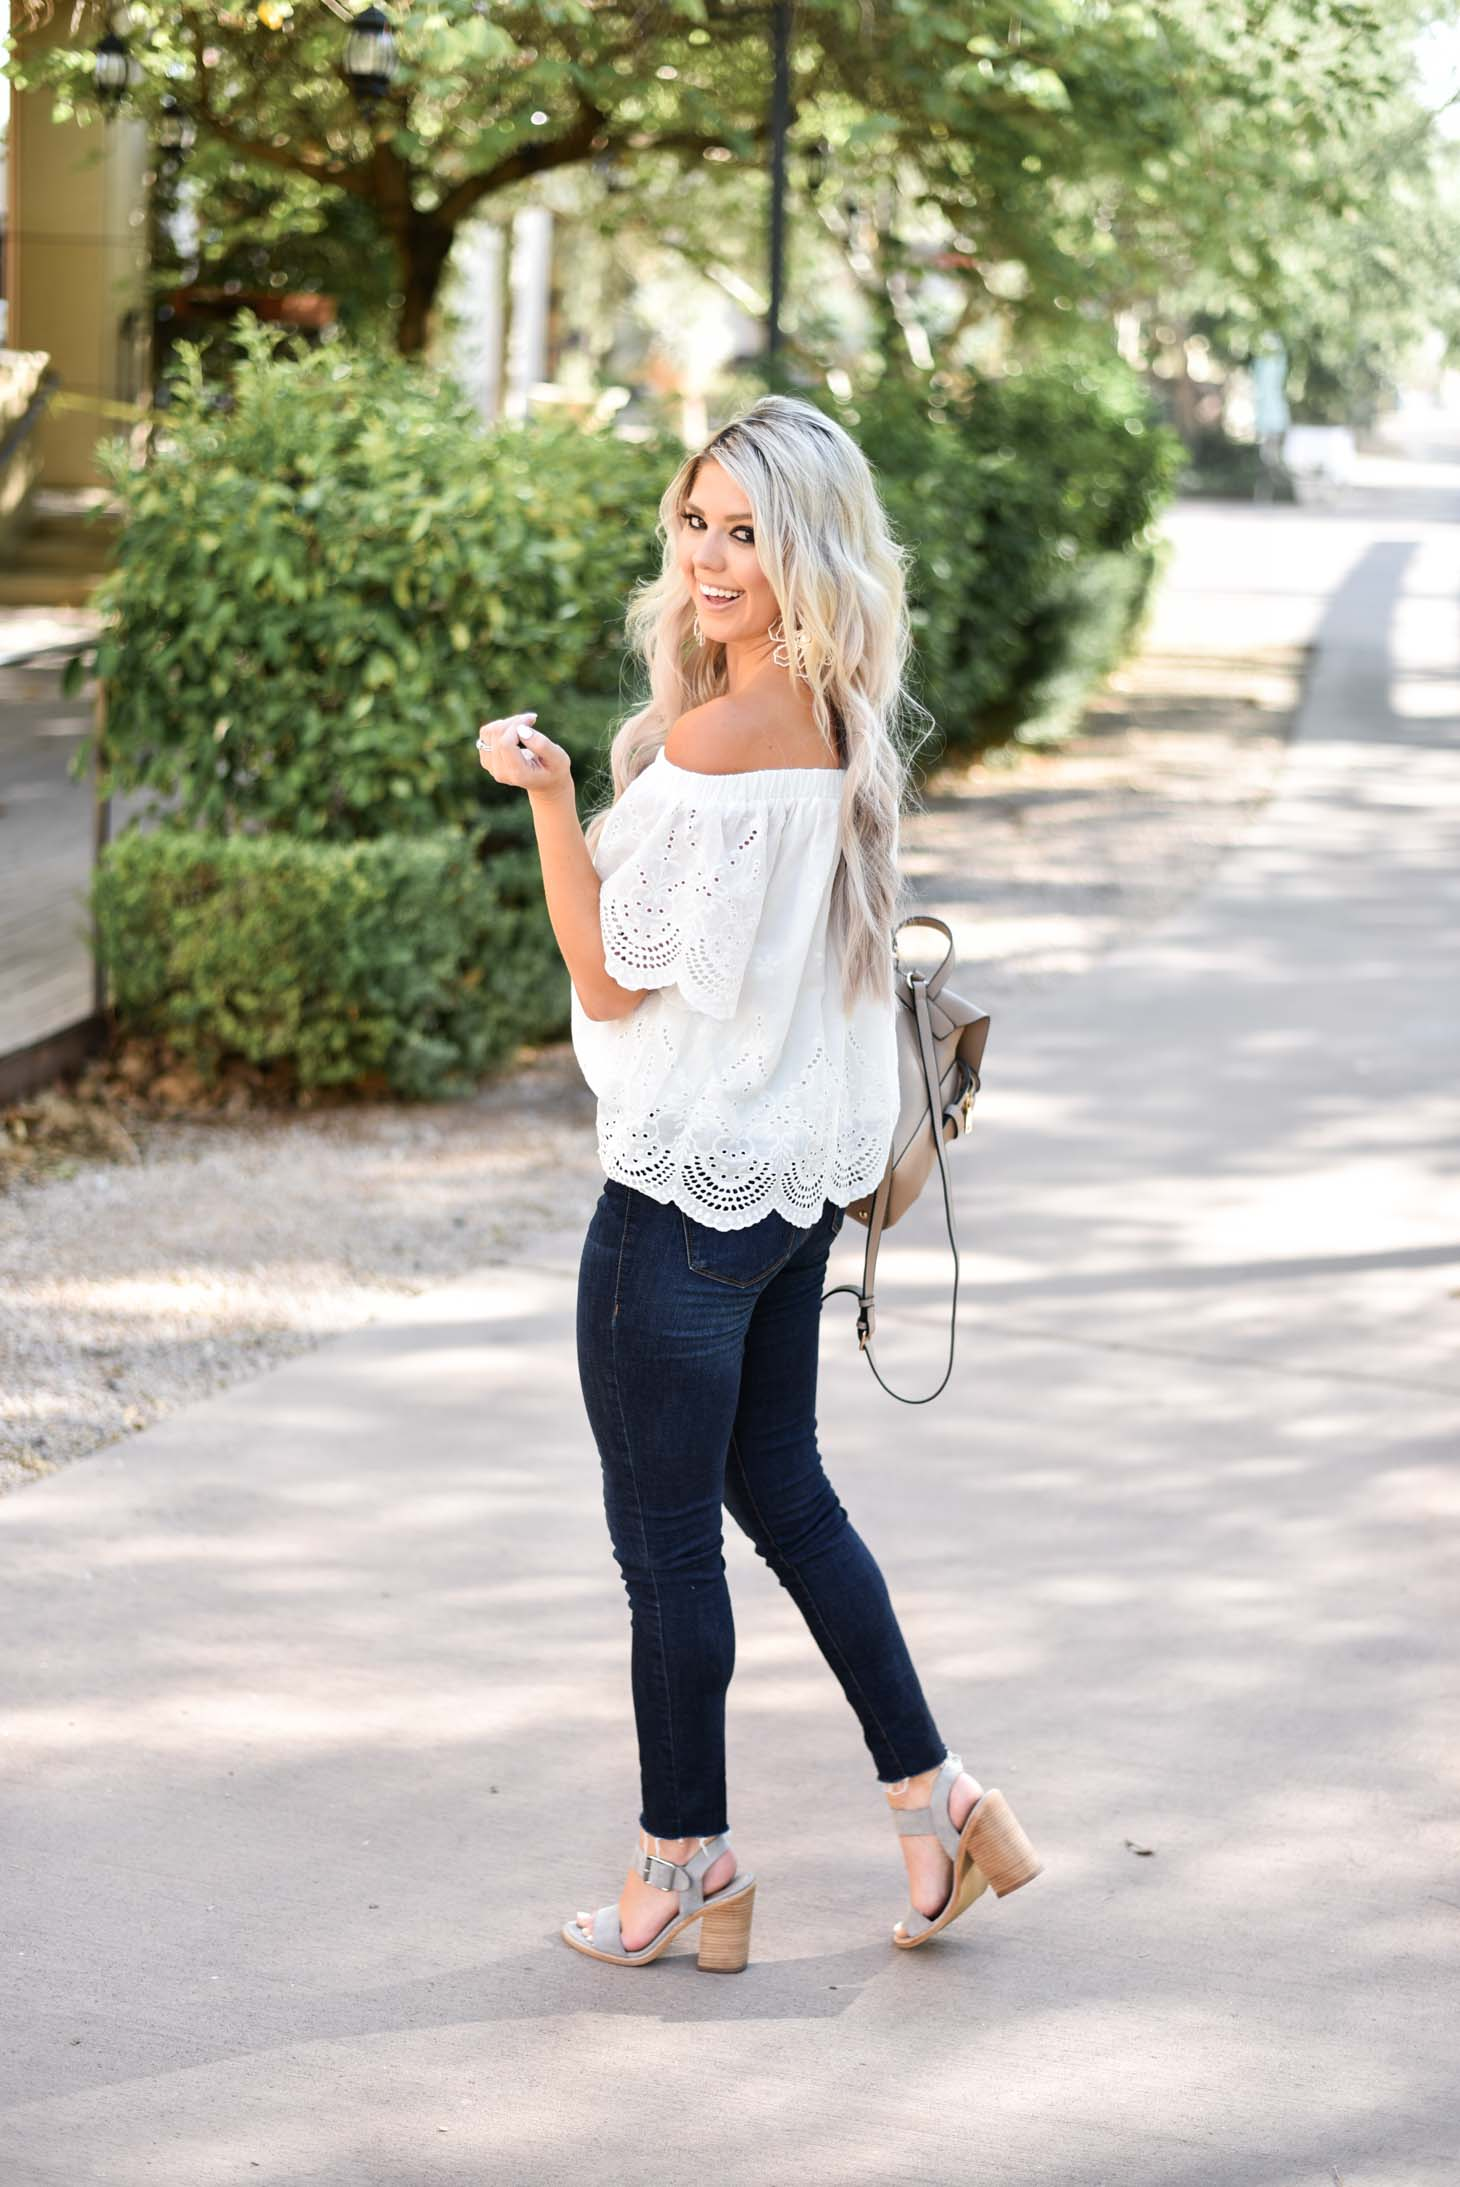 Erin Elizabeth of Wink and a Twirl shares the cutest white eyelet off the shoulder top from Jess Lea Boutique